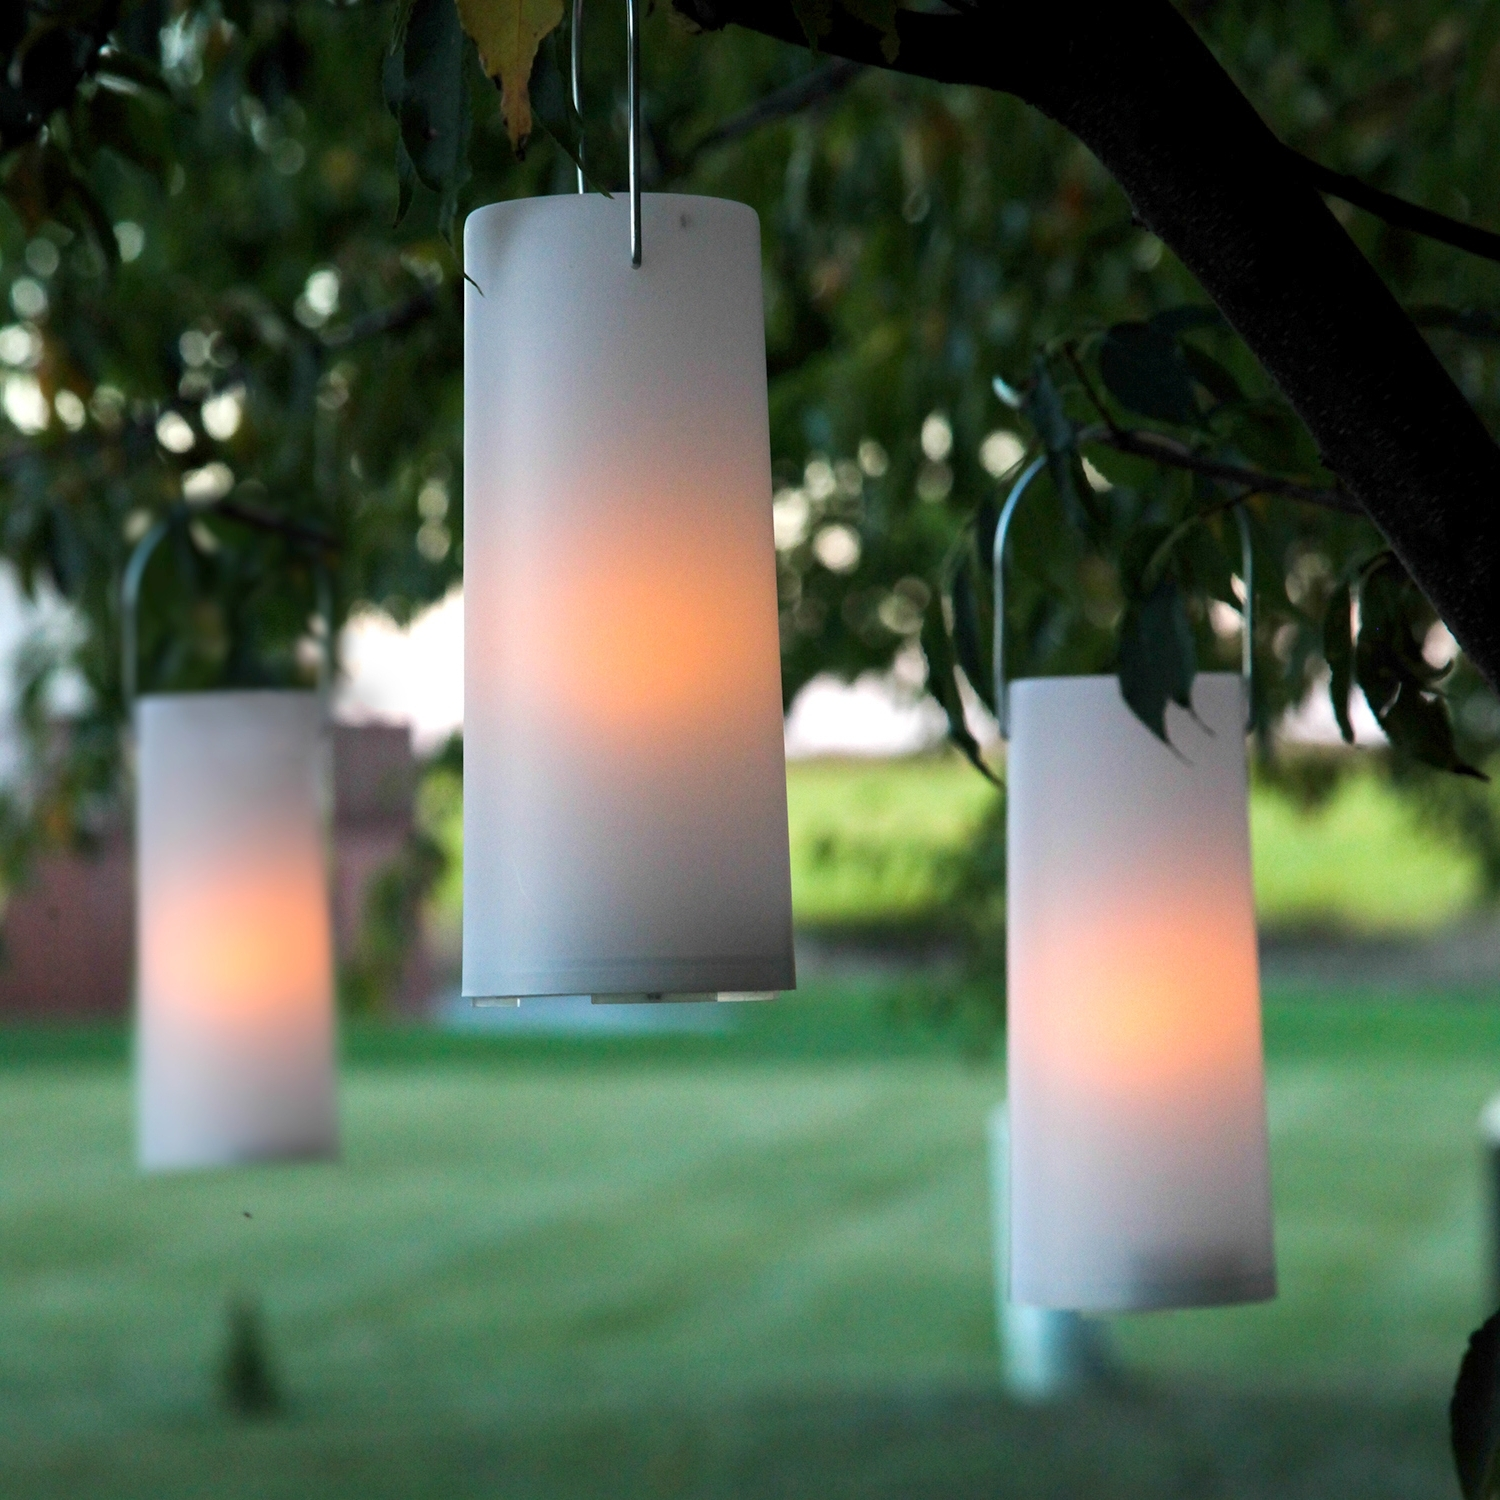 2019 Outdoor Candle Lanterns #11331 Within Outdoor Hanging Lanterns With Battery Operated (View 1 of 20)